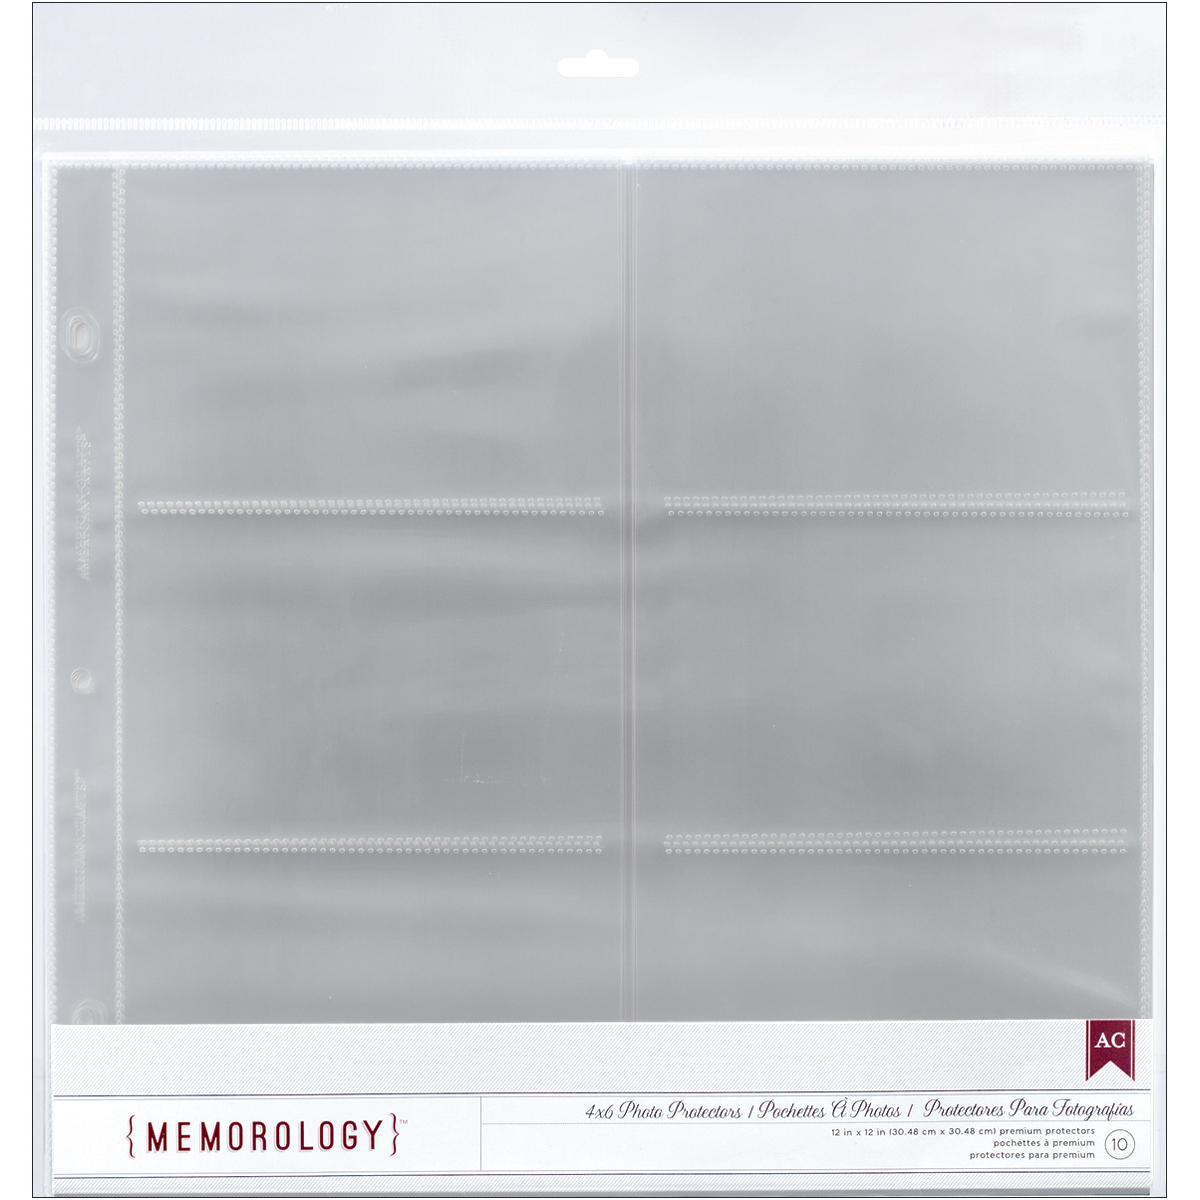 "American Crafts Photo Protectors With Sleeves, 12"" x 12"" Sheet, 10/pkg, 6 (4"" x 6"") Pockets"